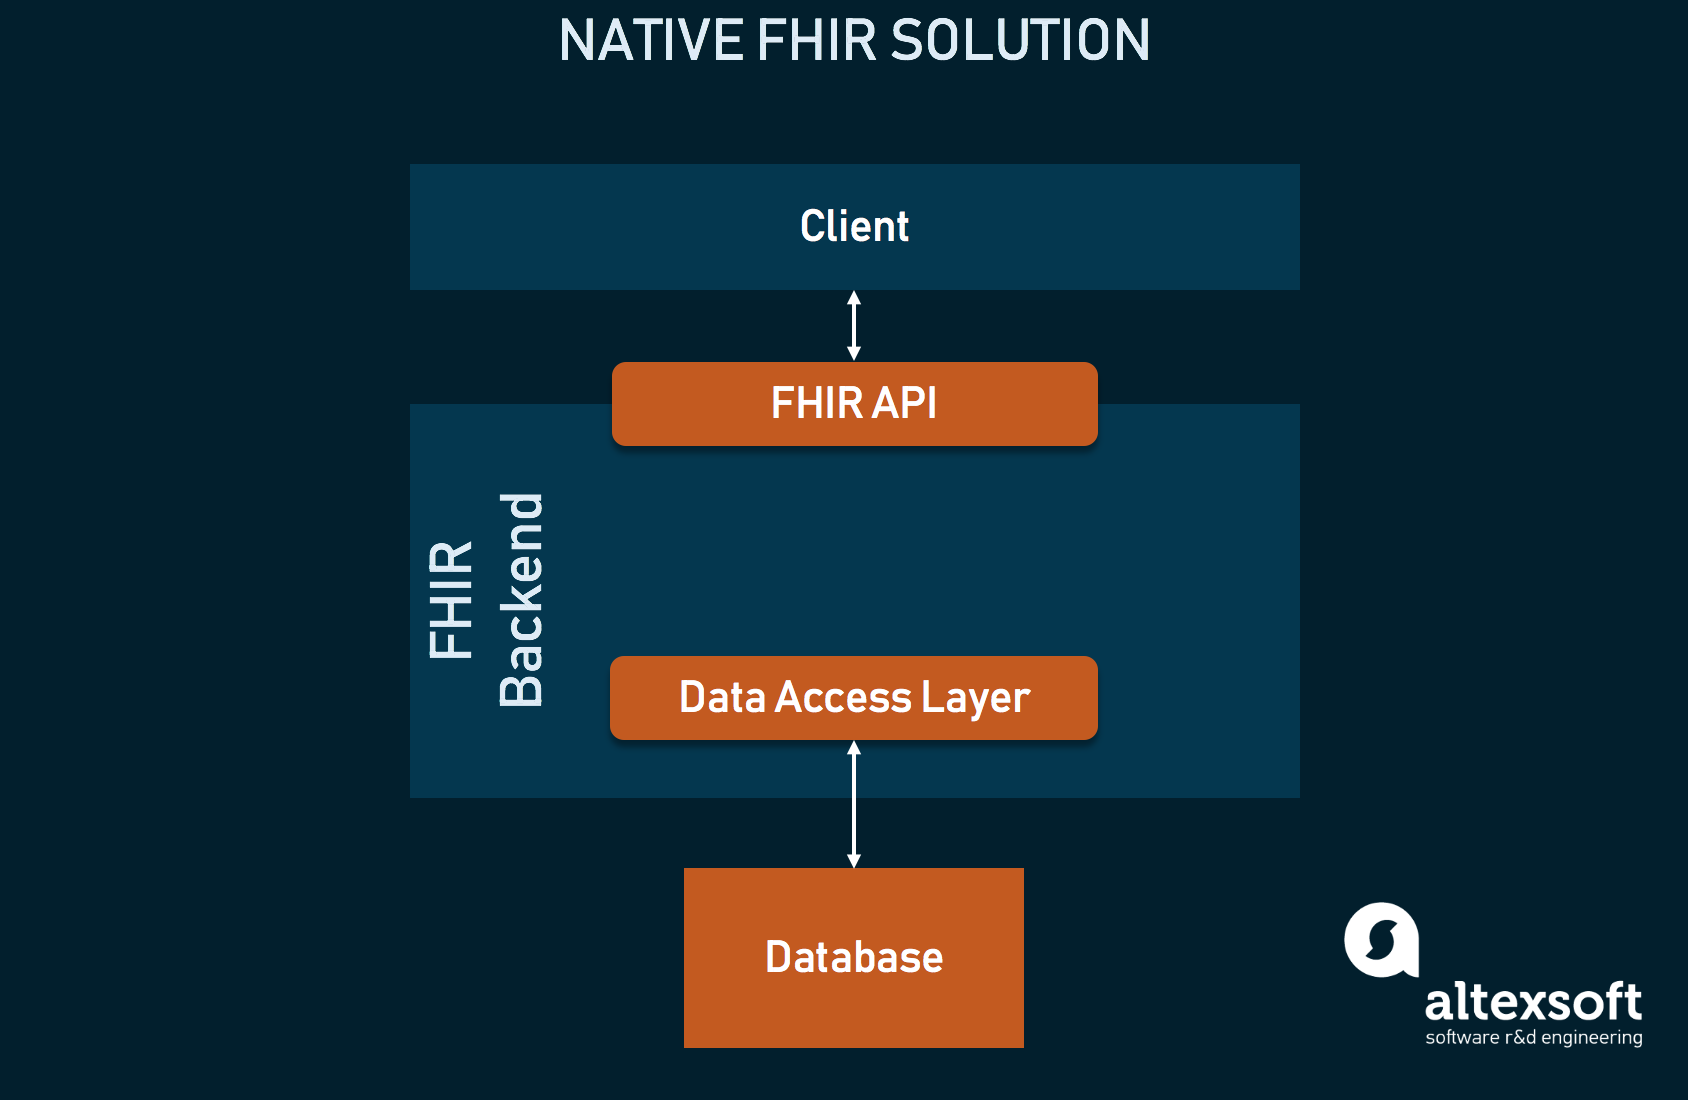 FHIR-native system architecture